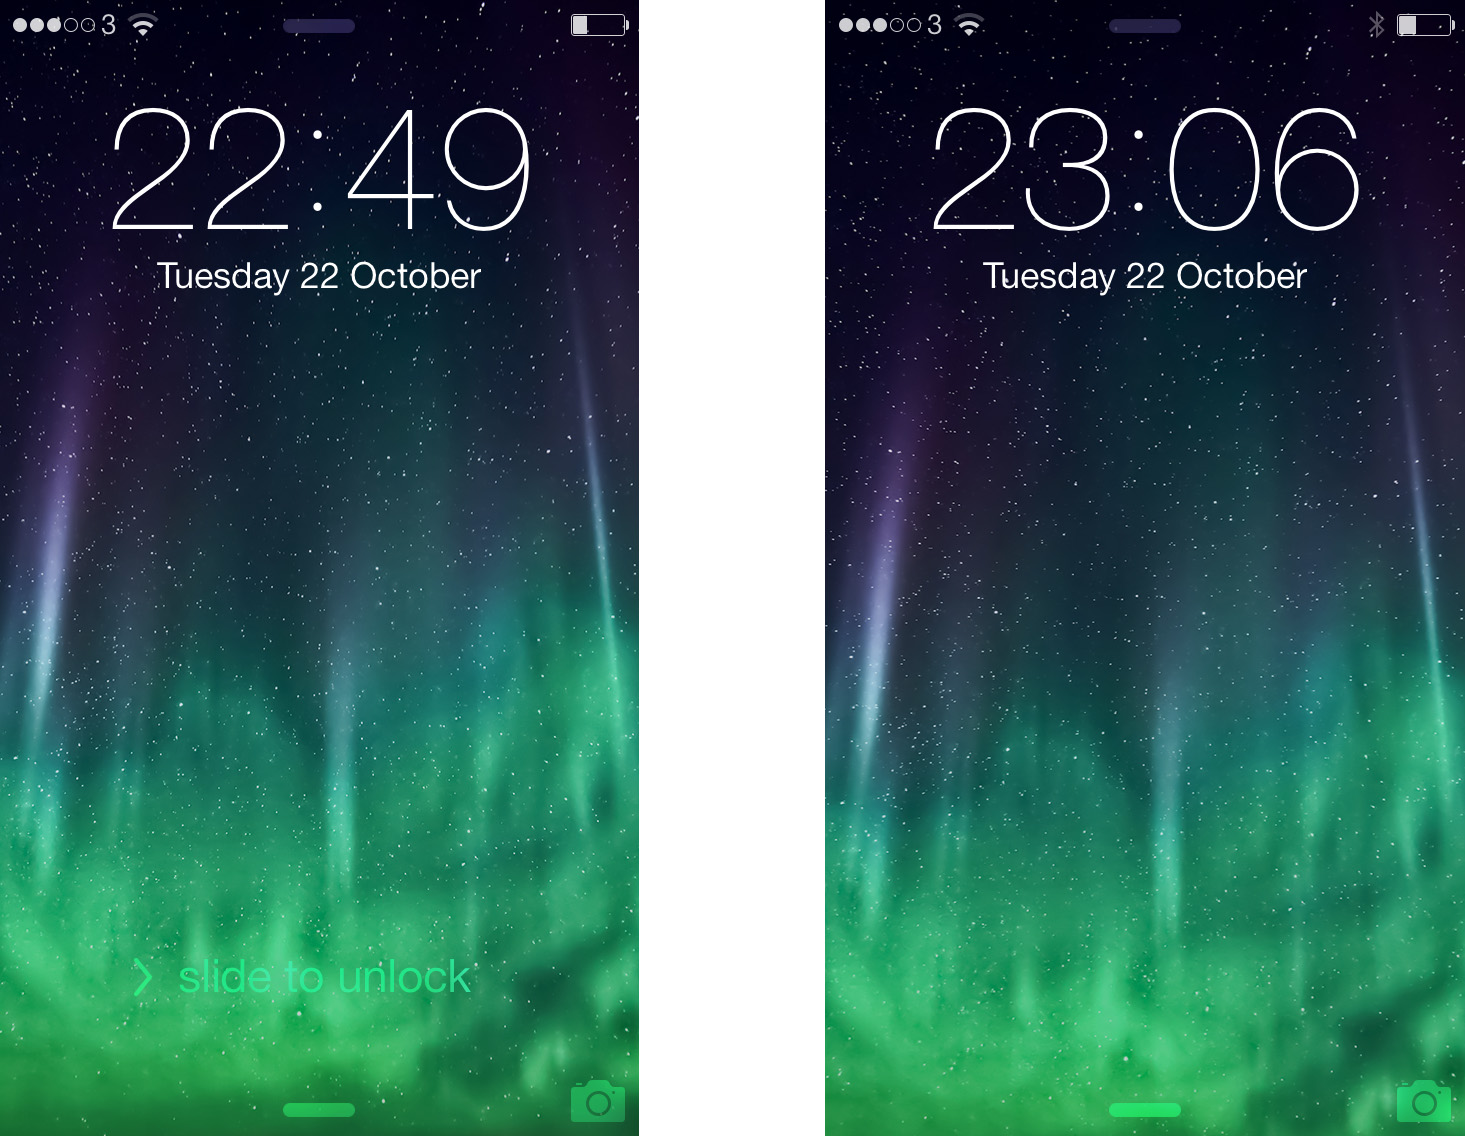 Slide to unlock updated iPhone 5s iOS 7.0.3 copy